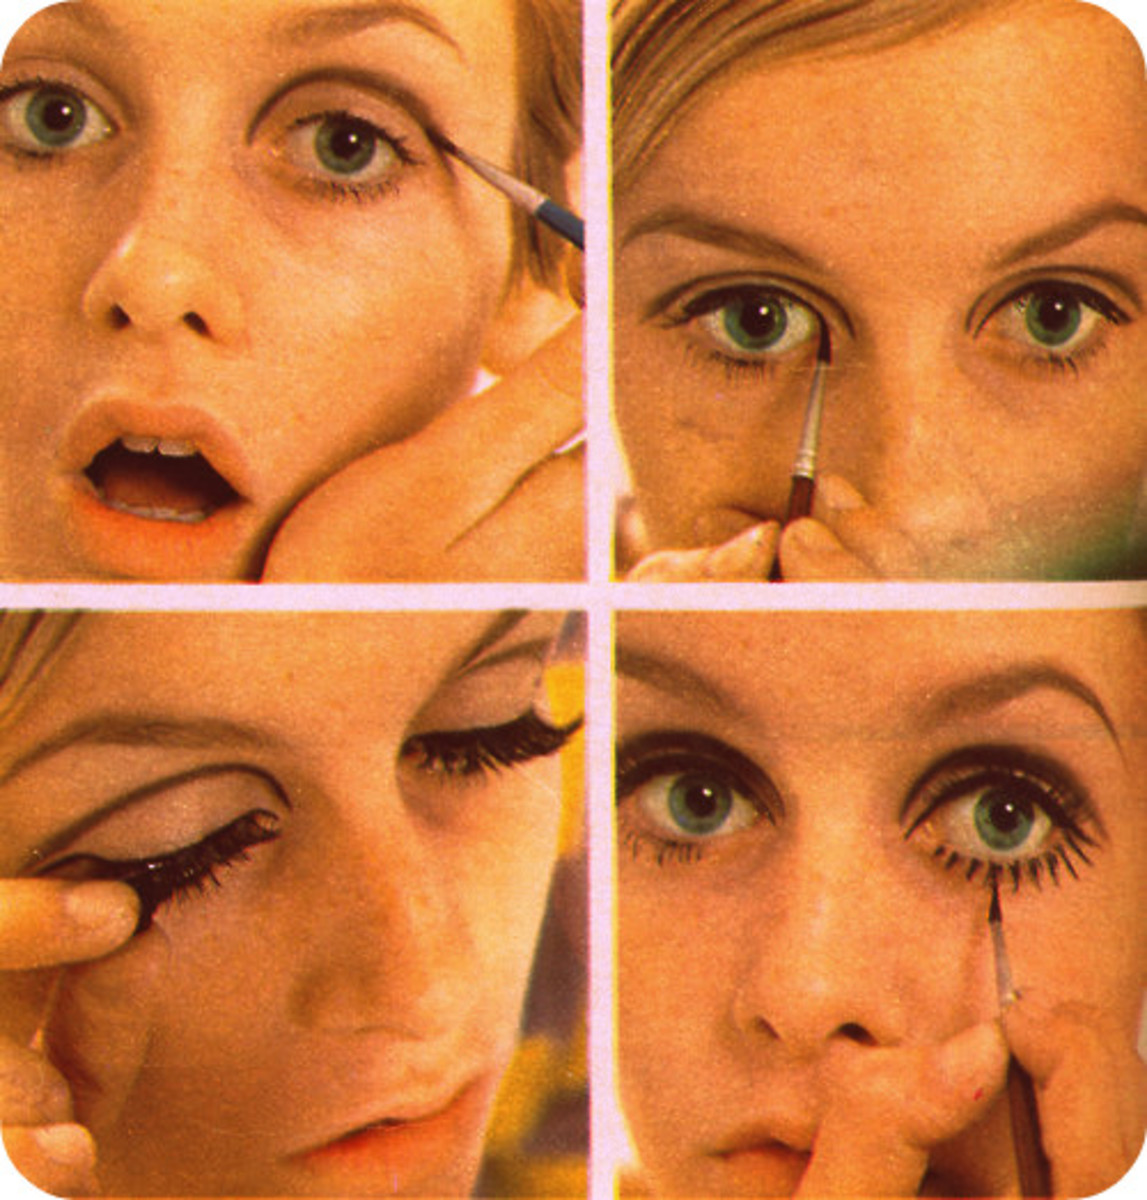 Twiggy puts on her eye makeup.